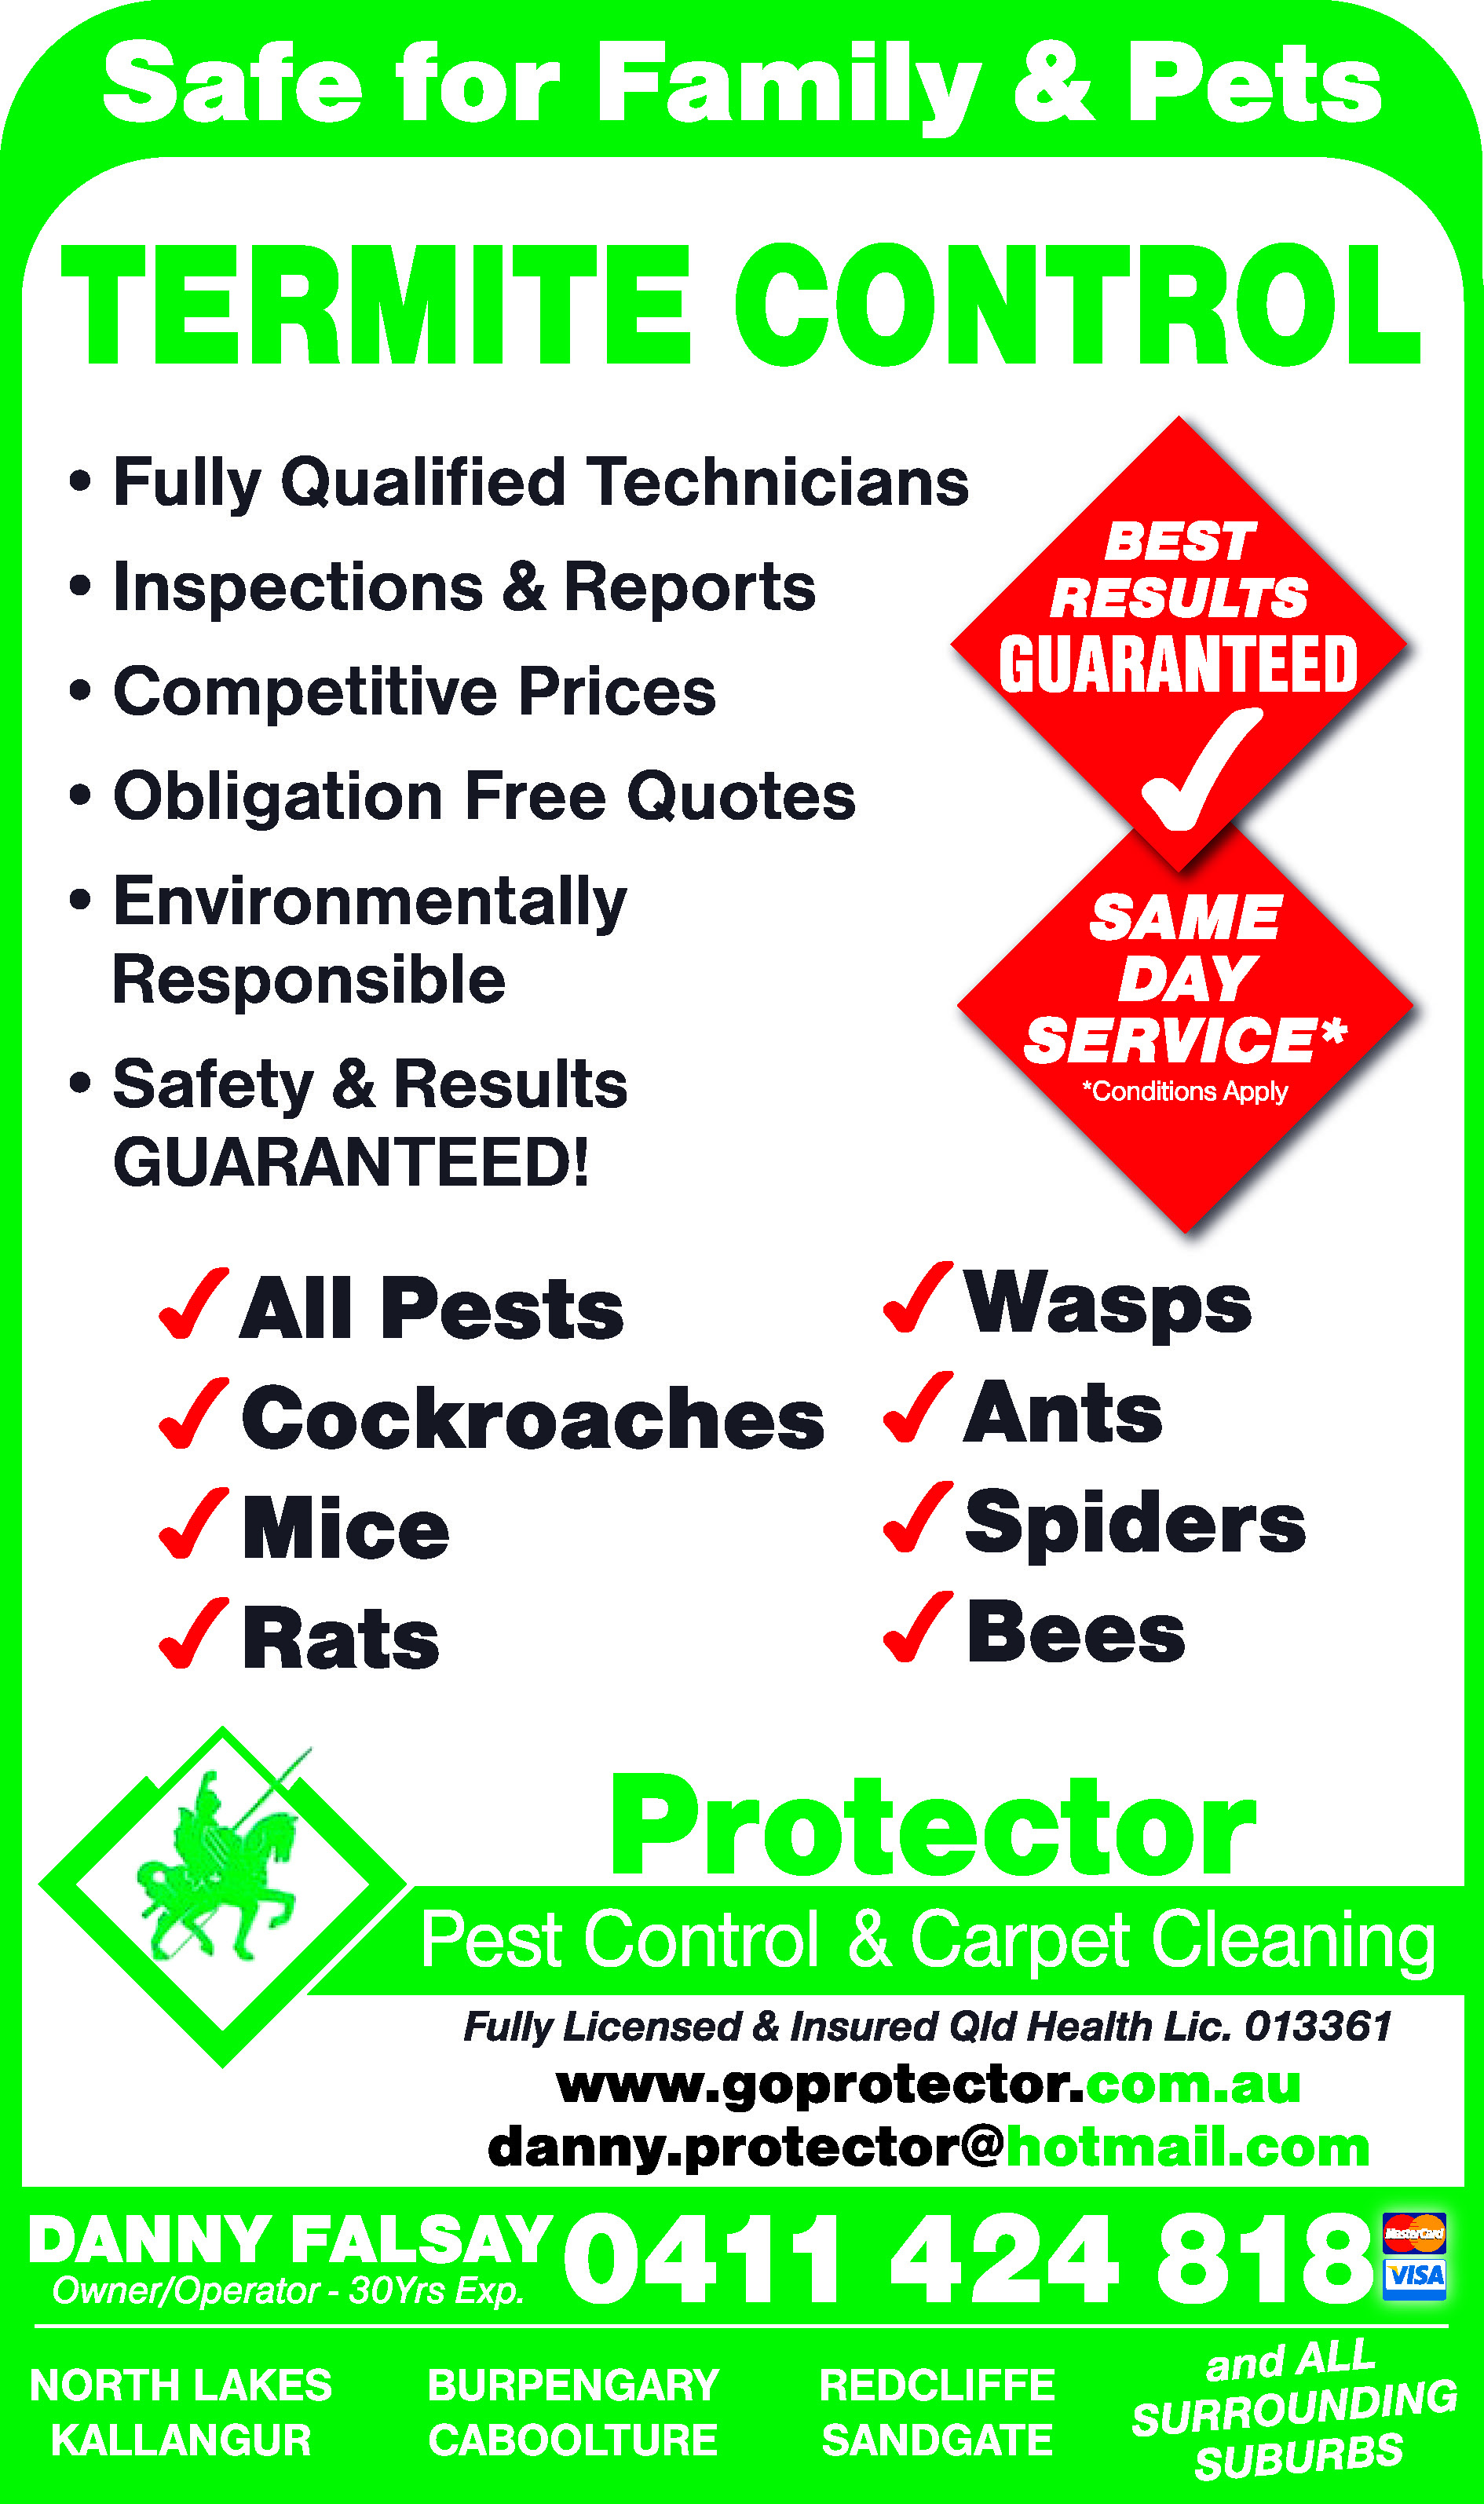 Protector Pest Control & Carpet Cleaning - Pest Control